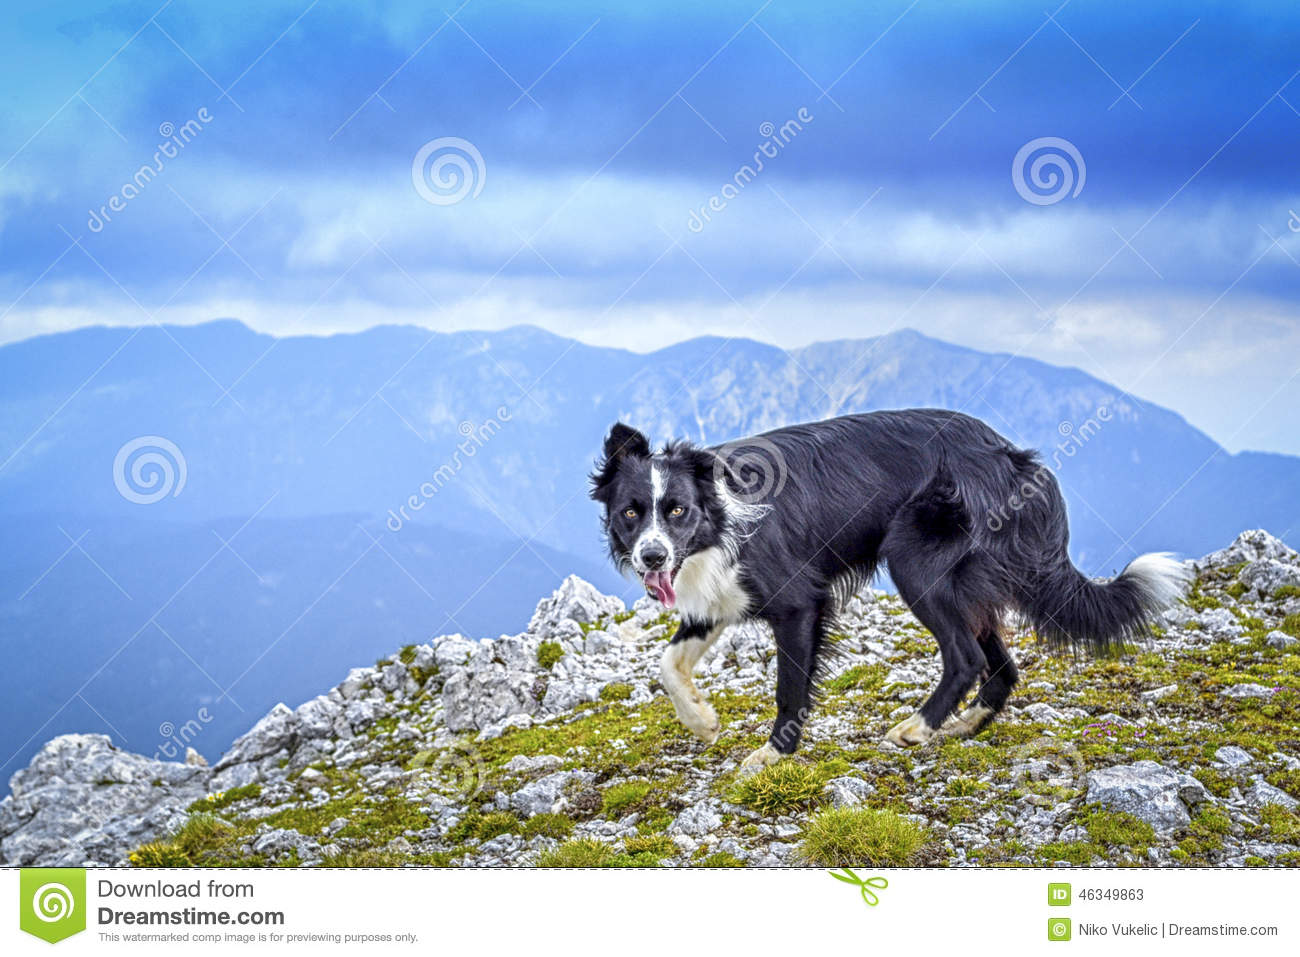 The dog at the top of the mountain